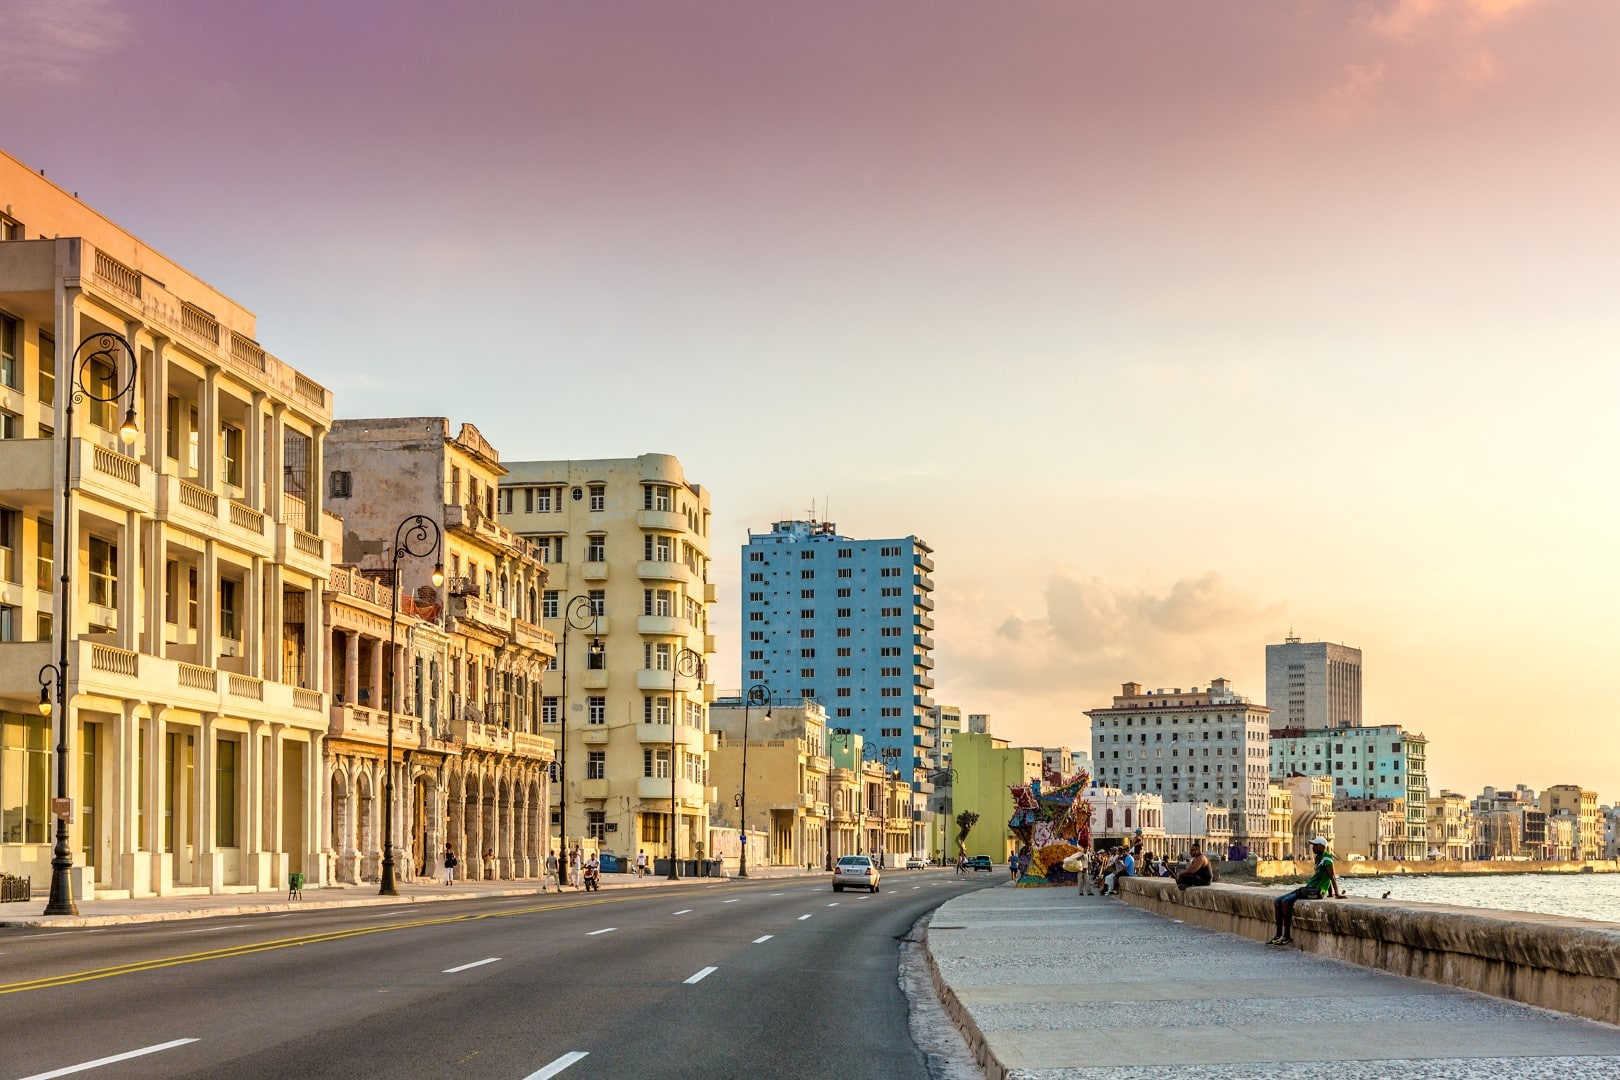 El Malecon in Havana, Cuba at sunset